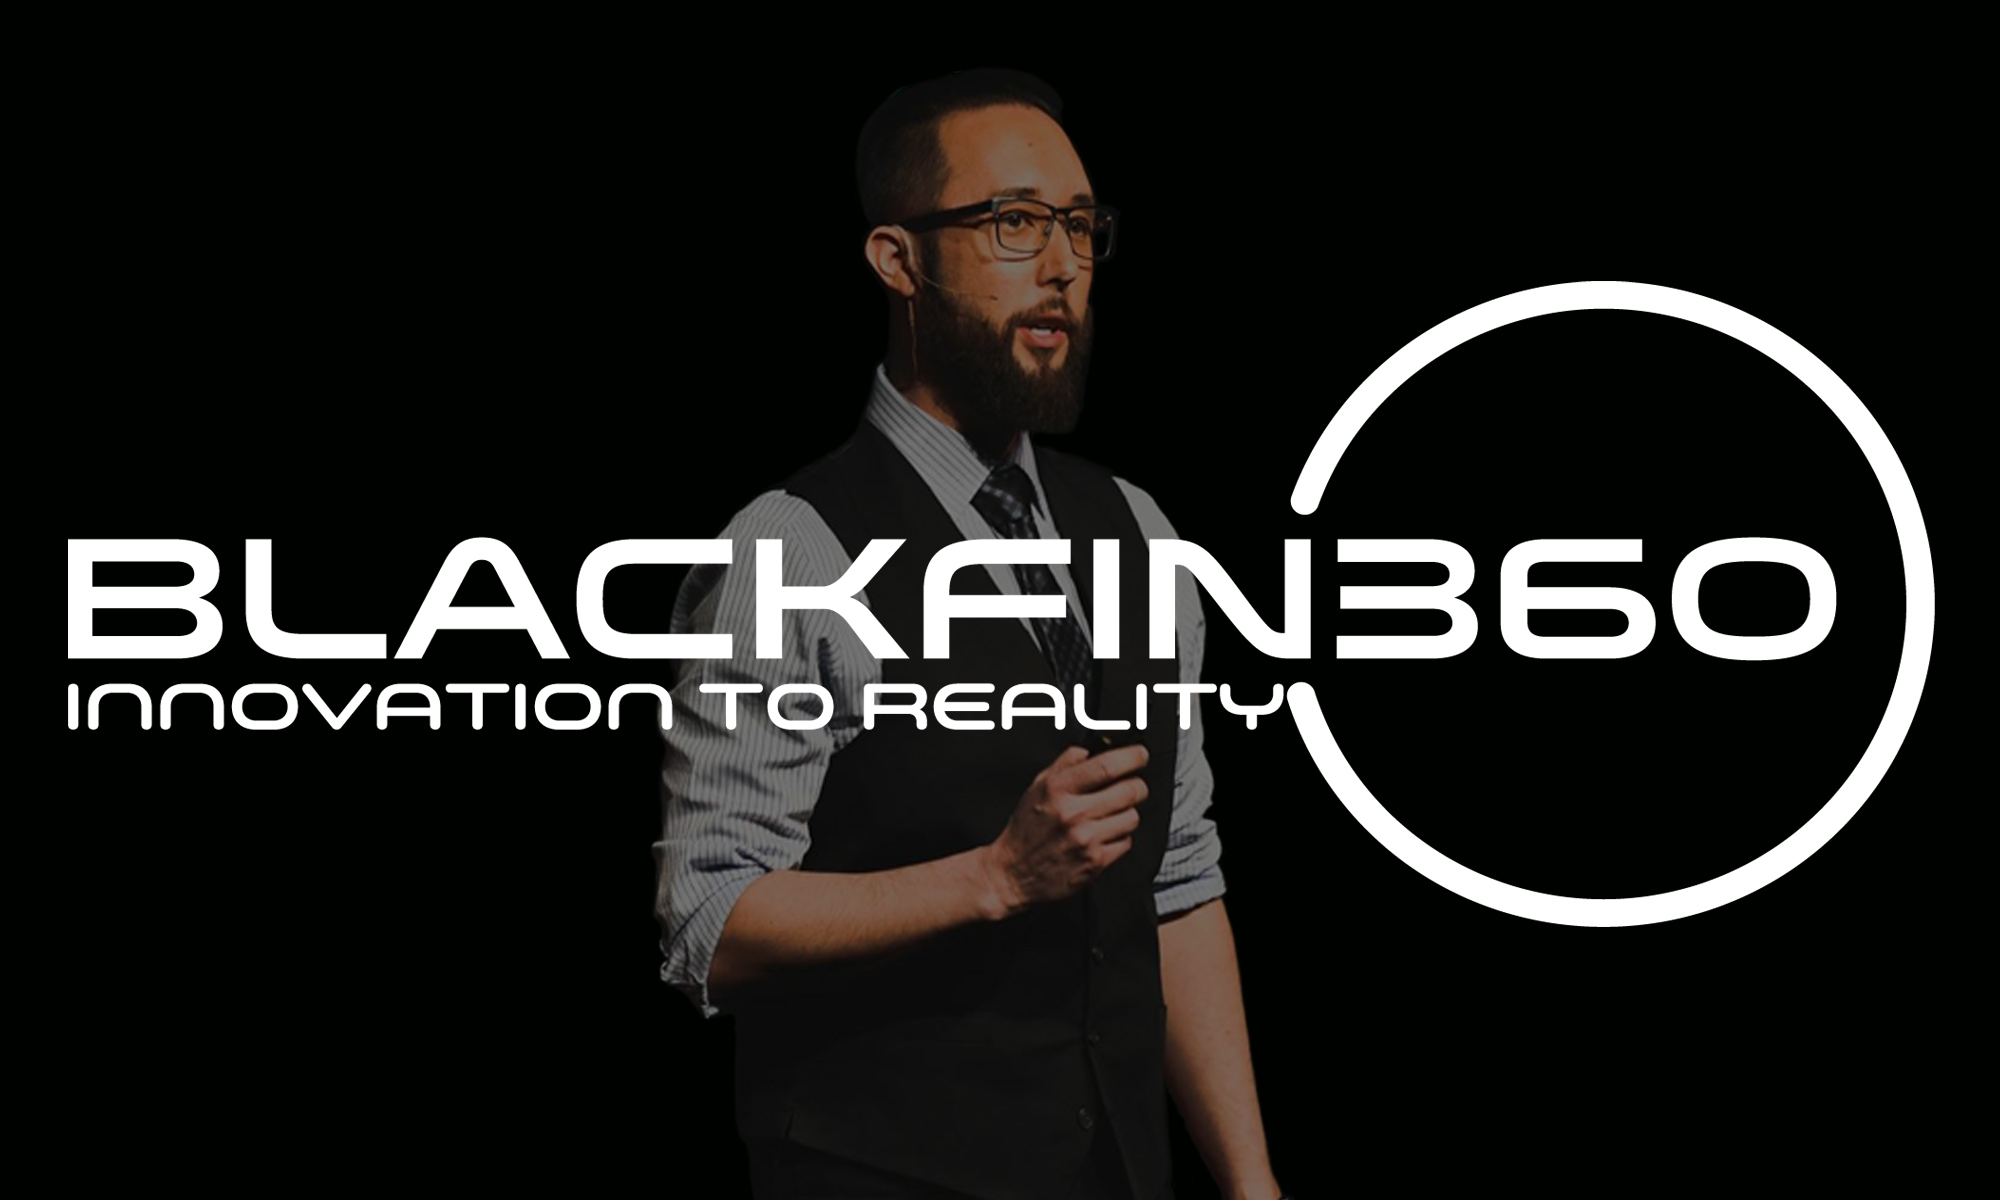 BlackFin360 - Innovation To Reality